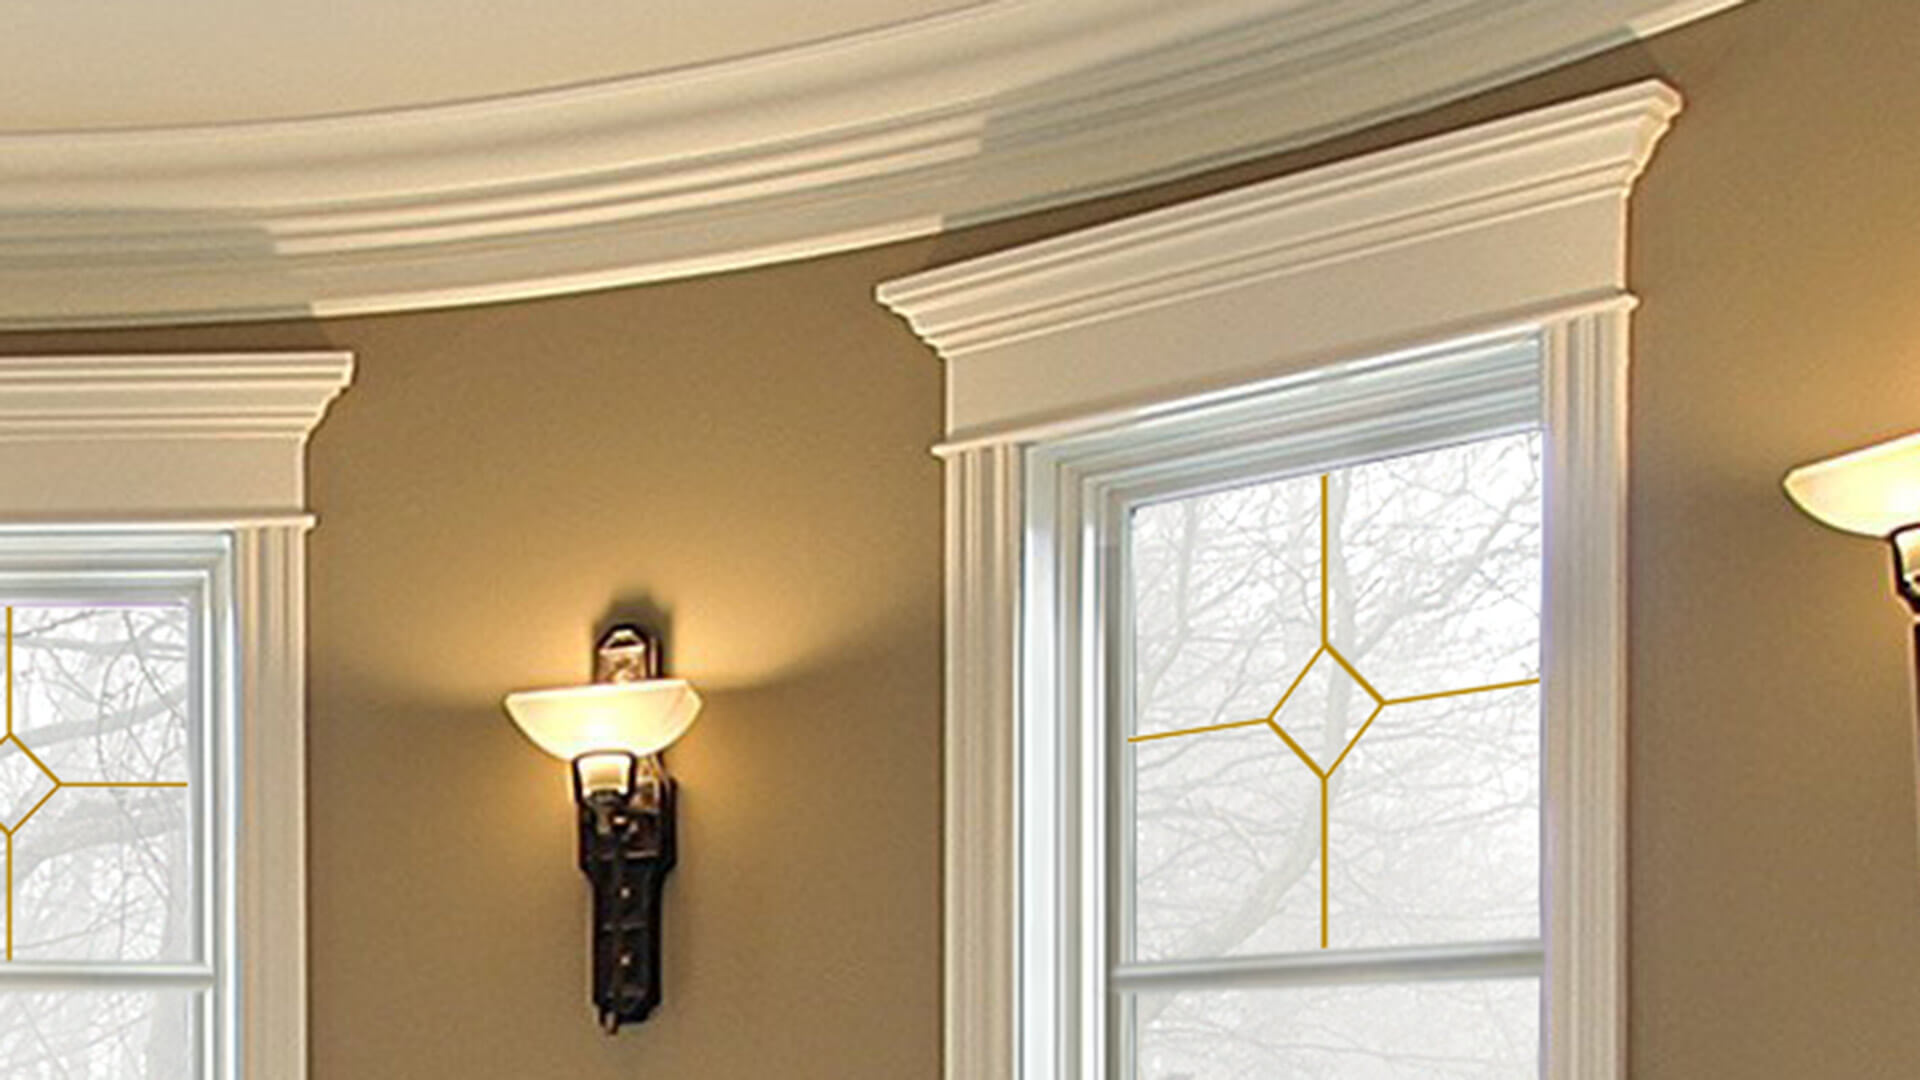 Specialty casing and trim on a living room window.